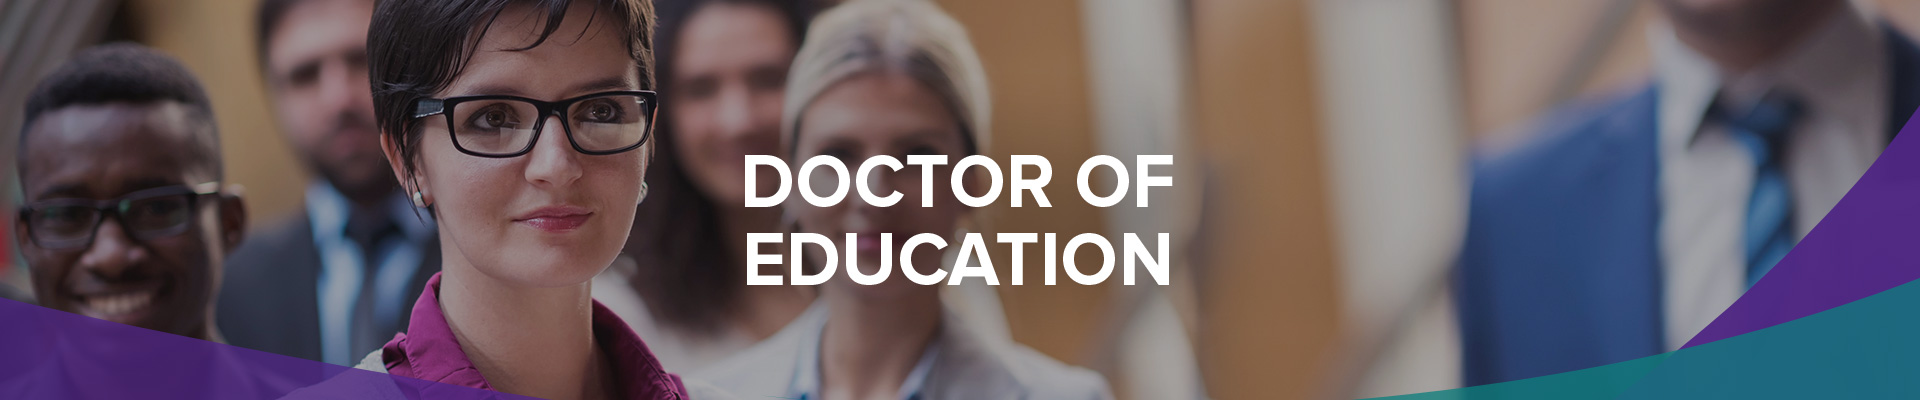 Doctor of Education